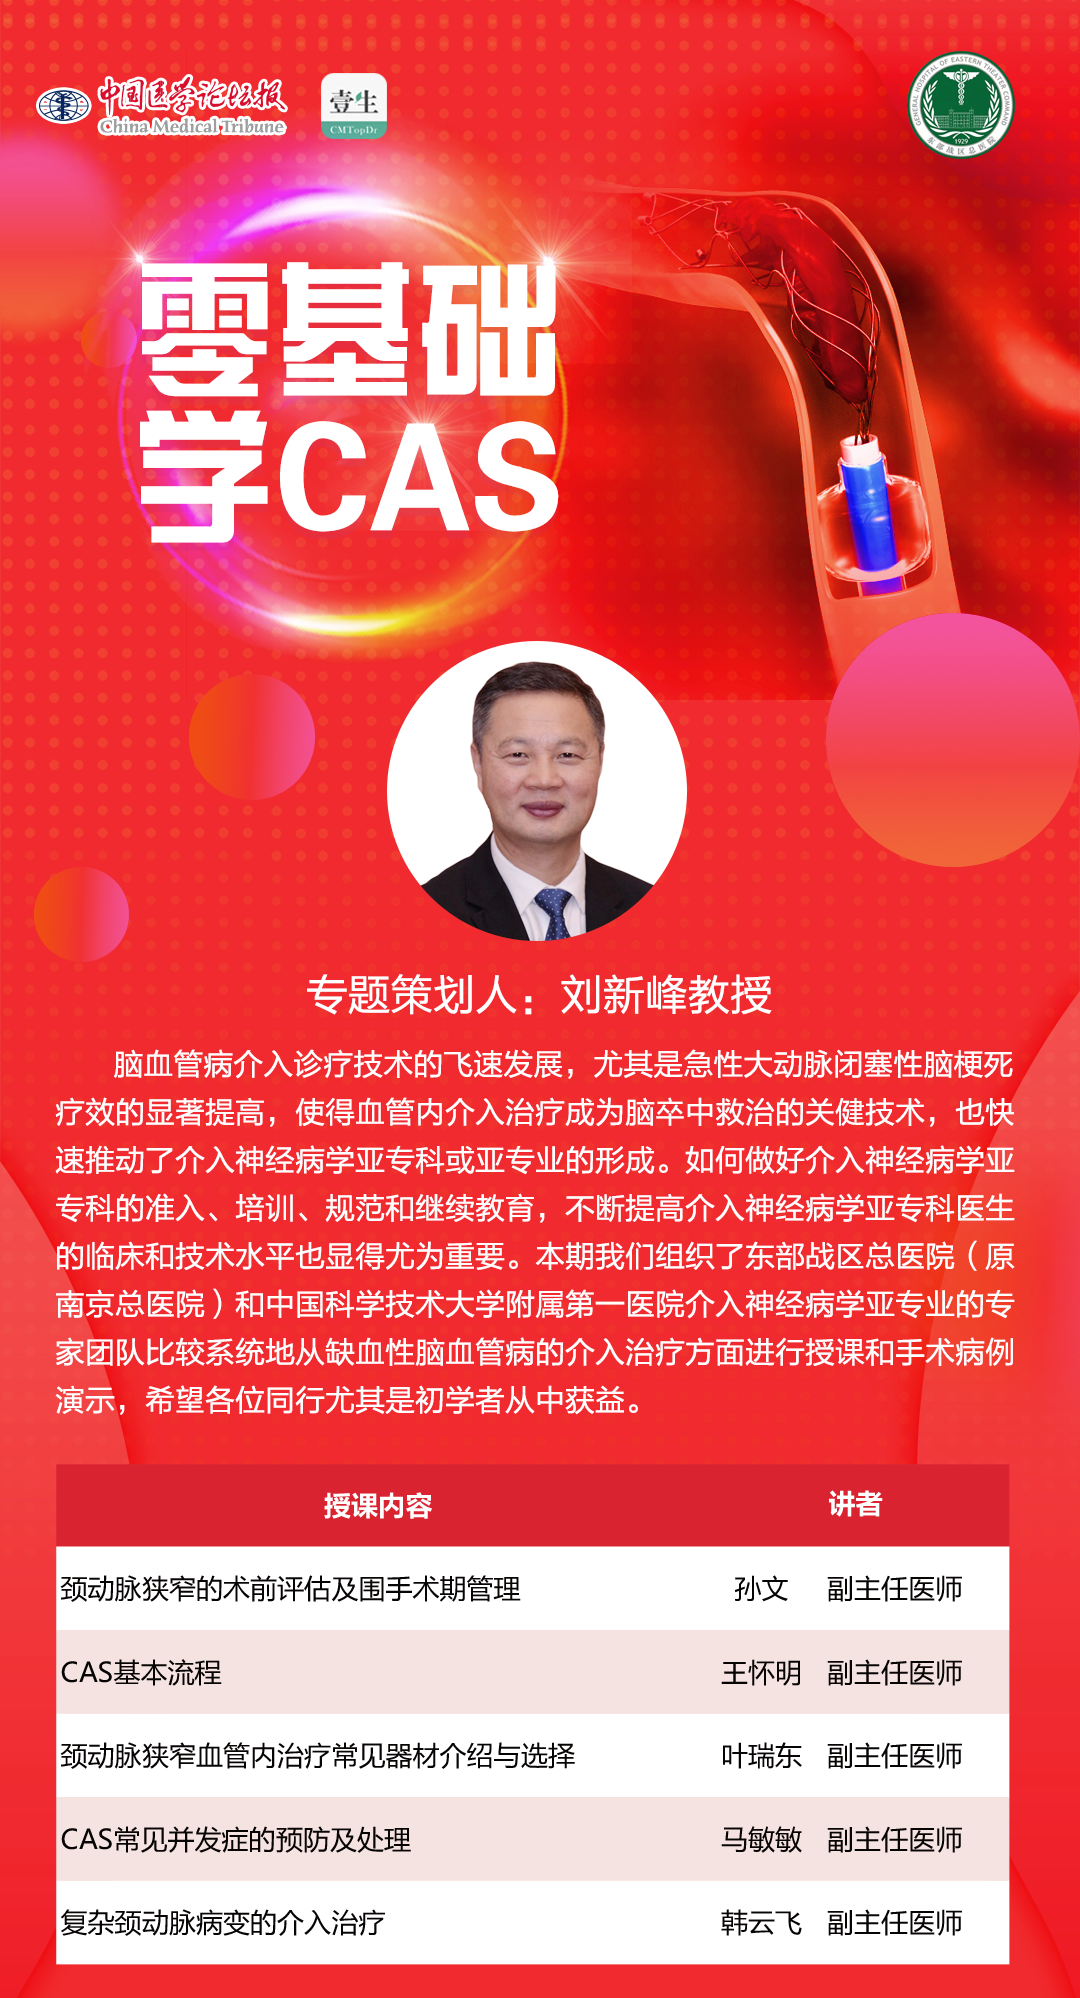 cas海报副本 2.png